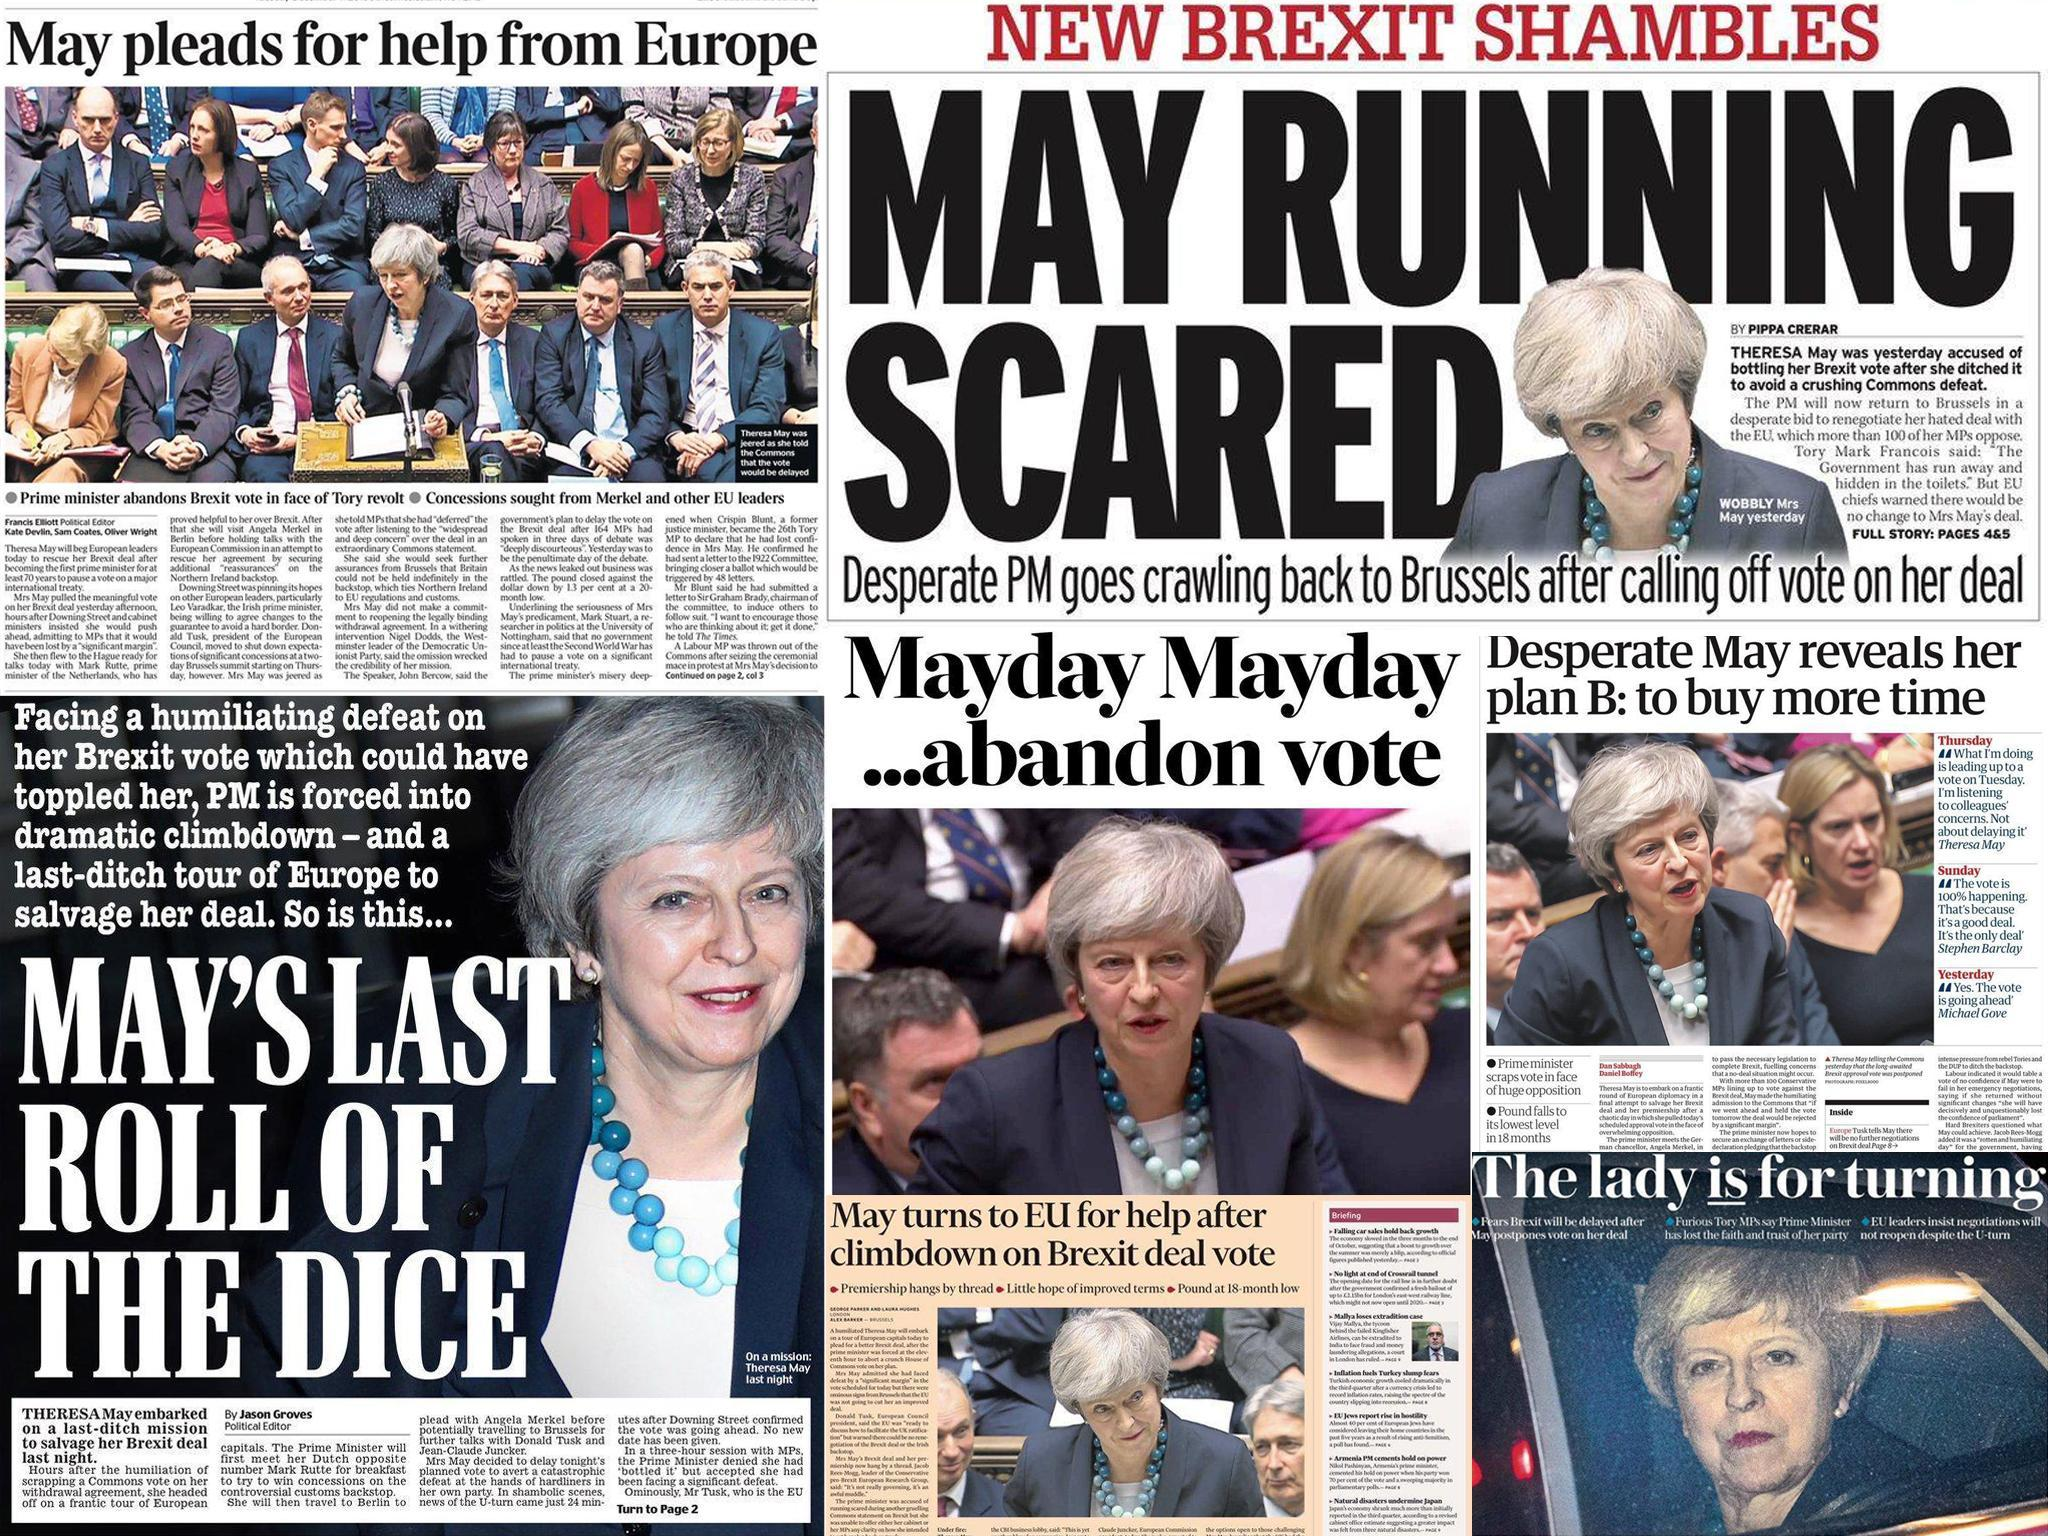 'Hanging by a thread': How the papers covered Theresa May's day of Brexit humiliation